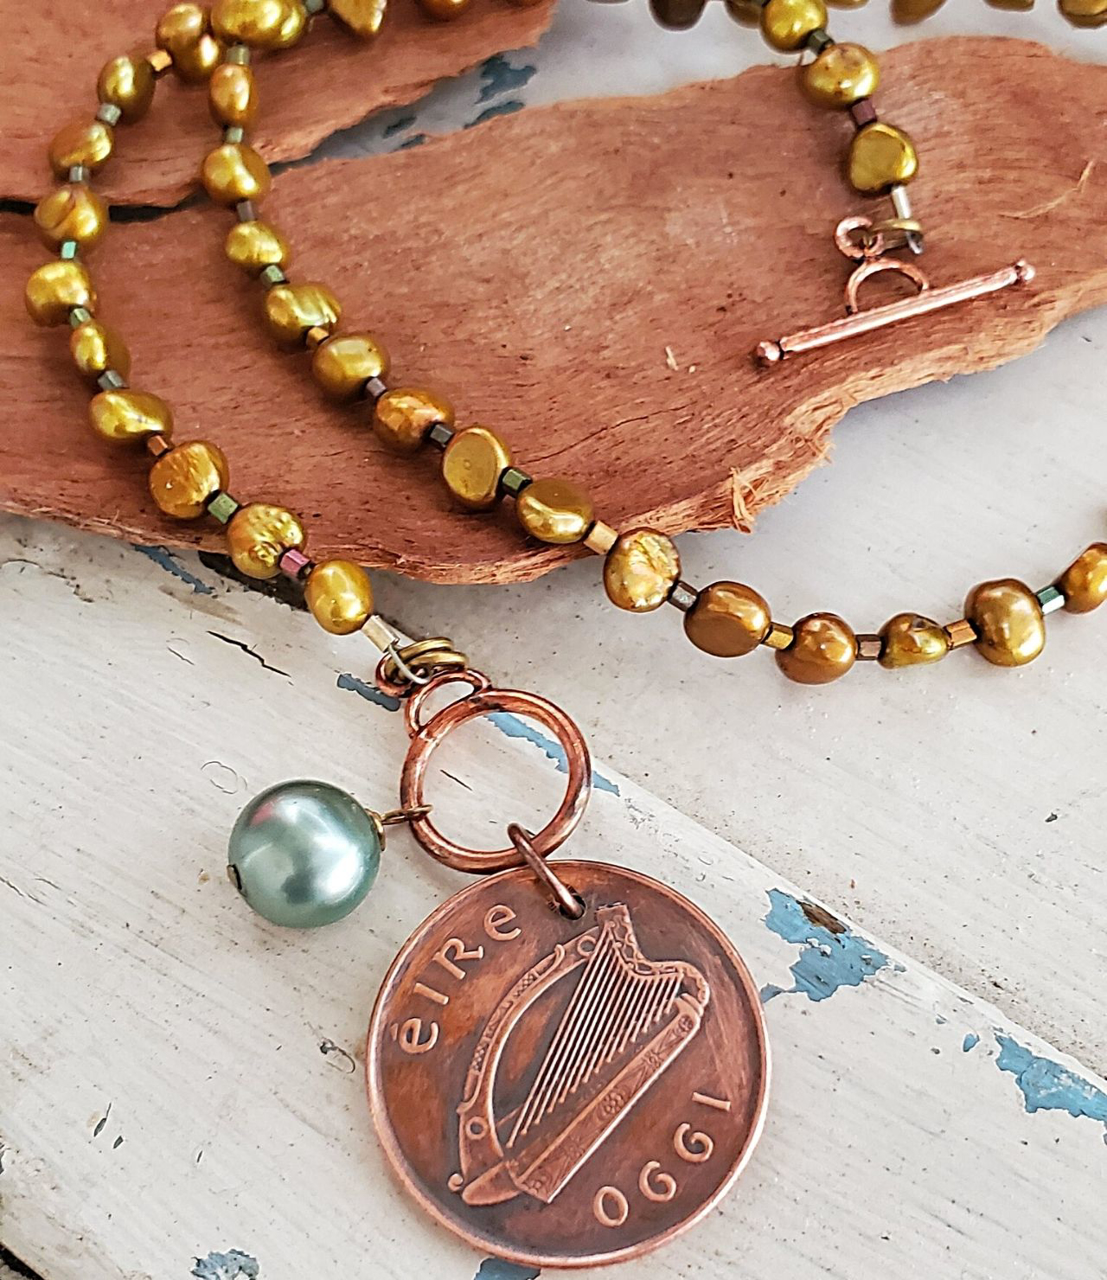 Irish coin pearl necklace on wood